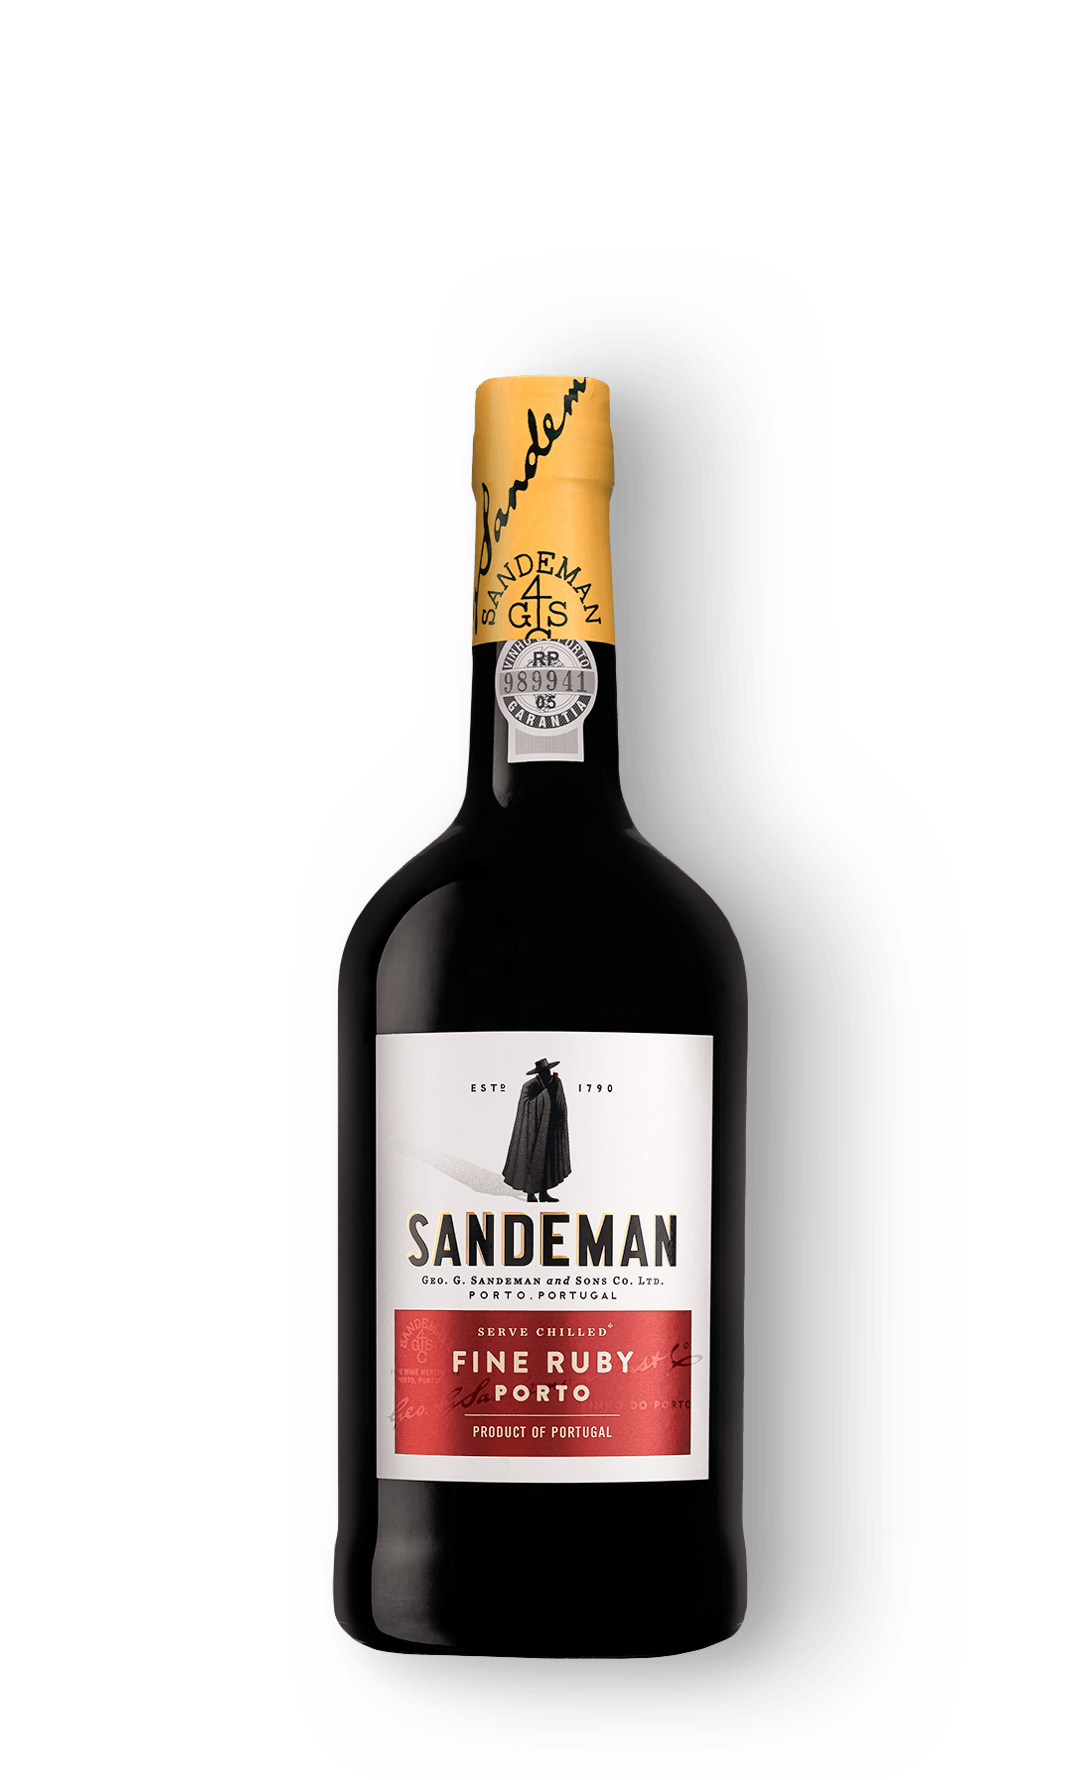 Sandeman Ruby Fineruby